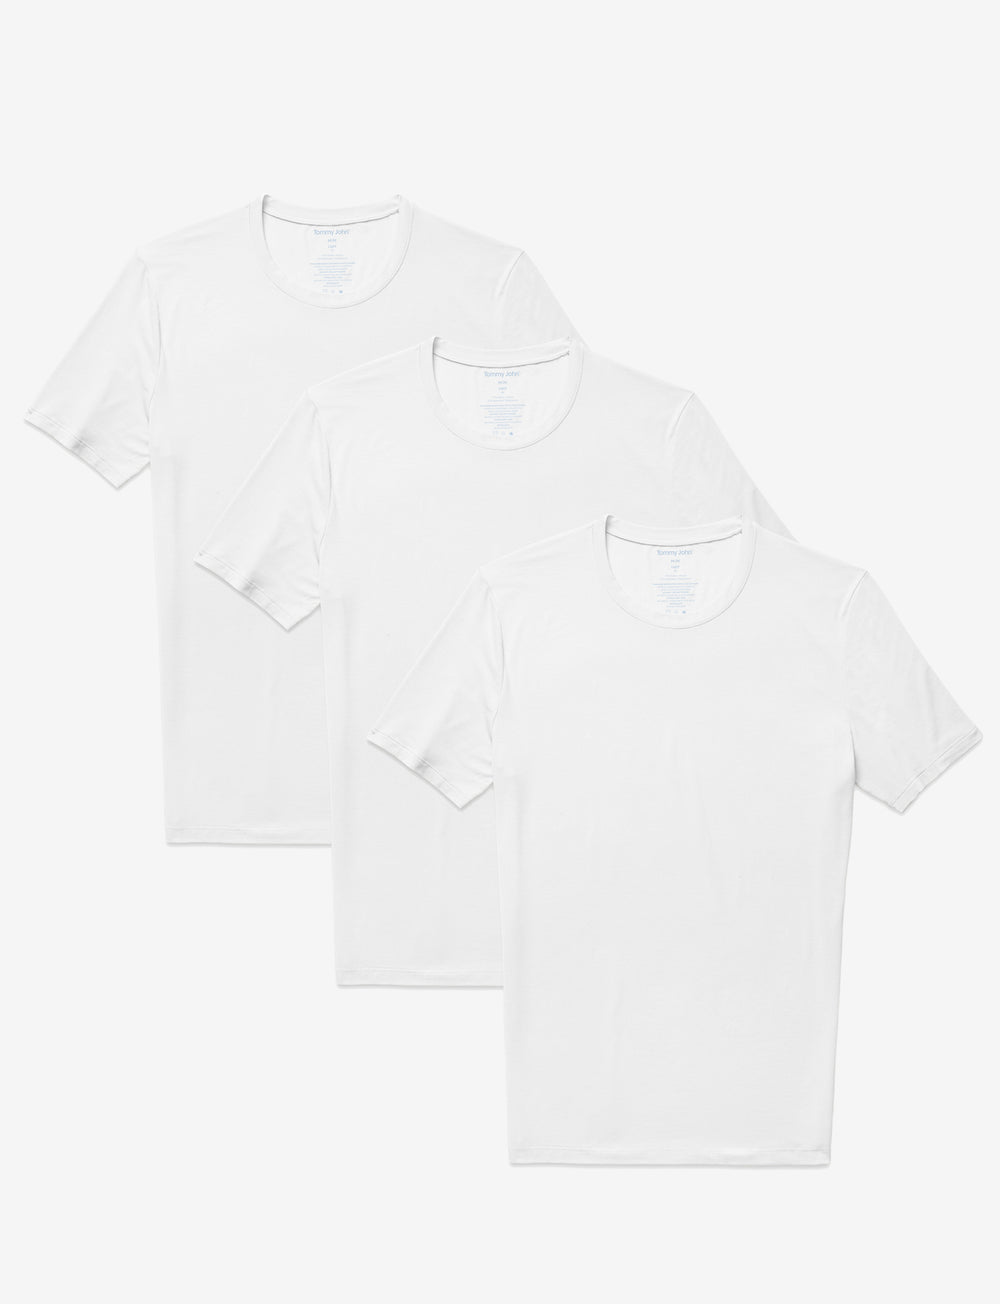 Air Crew Neck Undershirt 3 Pack Details Image